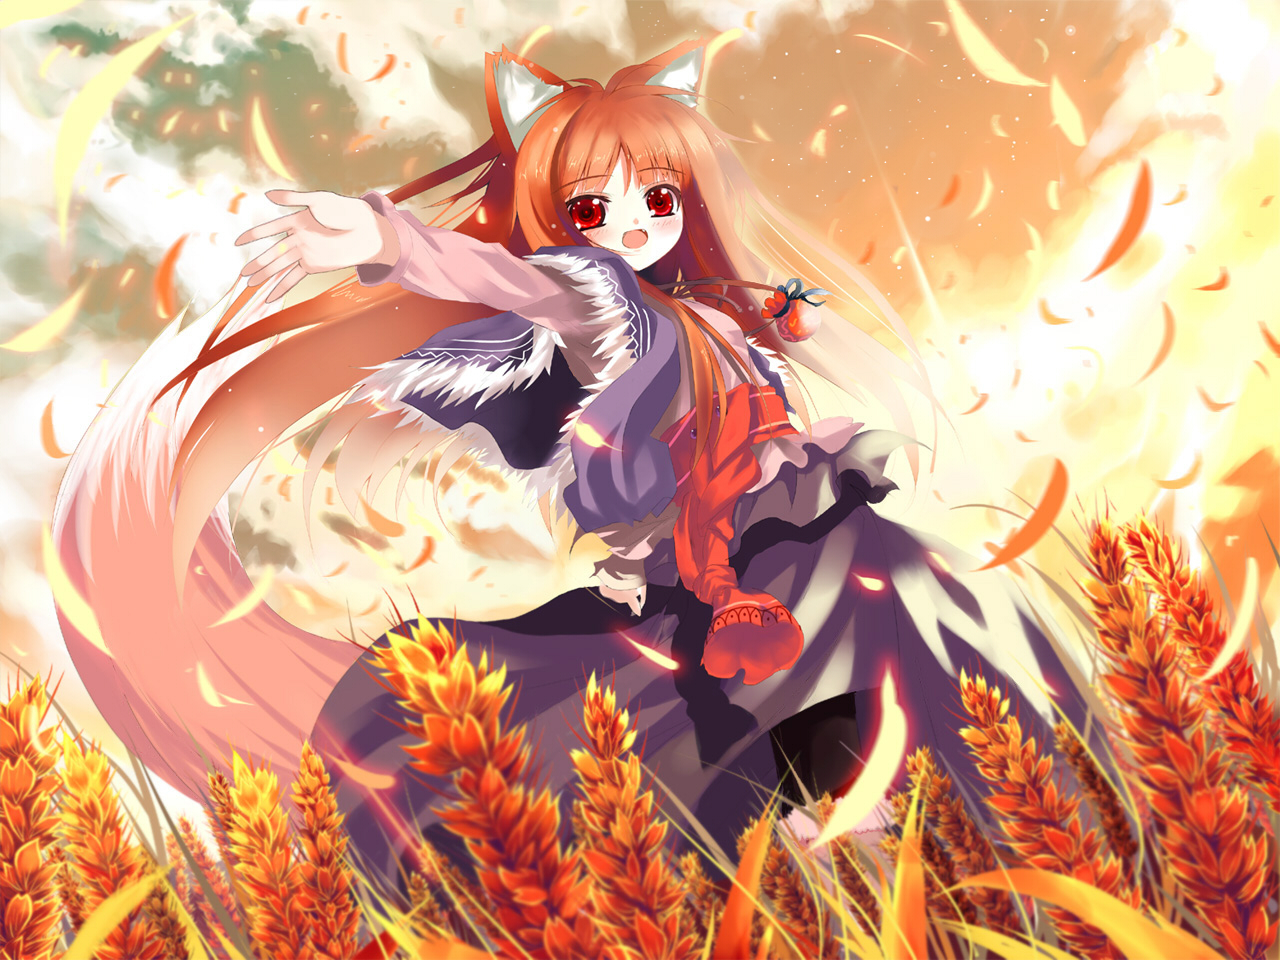 Free Download Anime Spice And Wolf Horo Wallpaper 1280x960 Full Hd